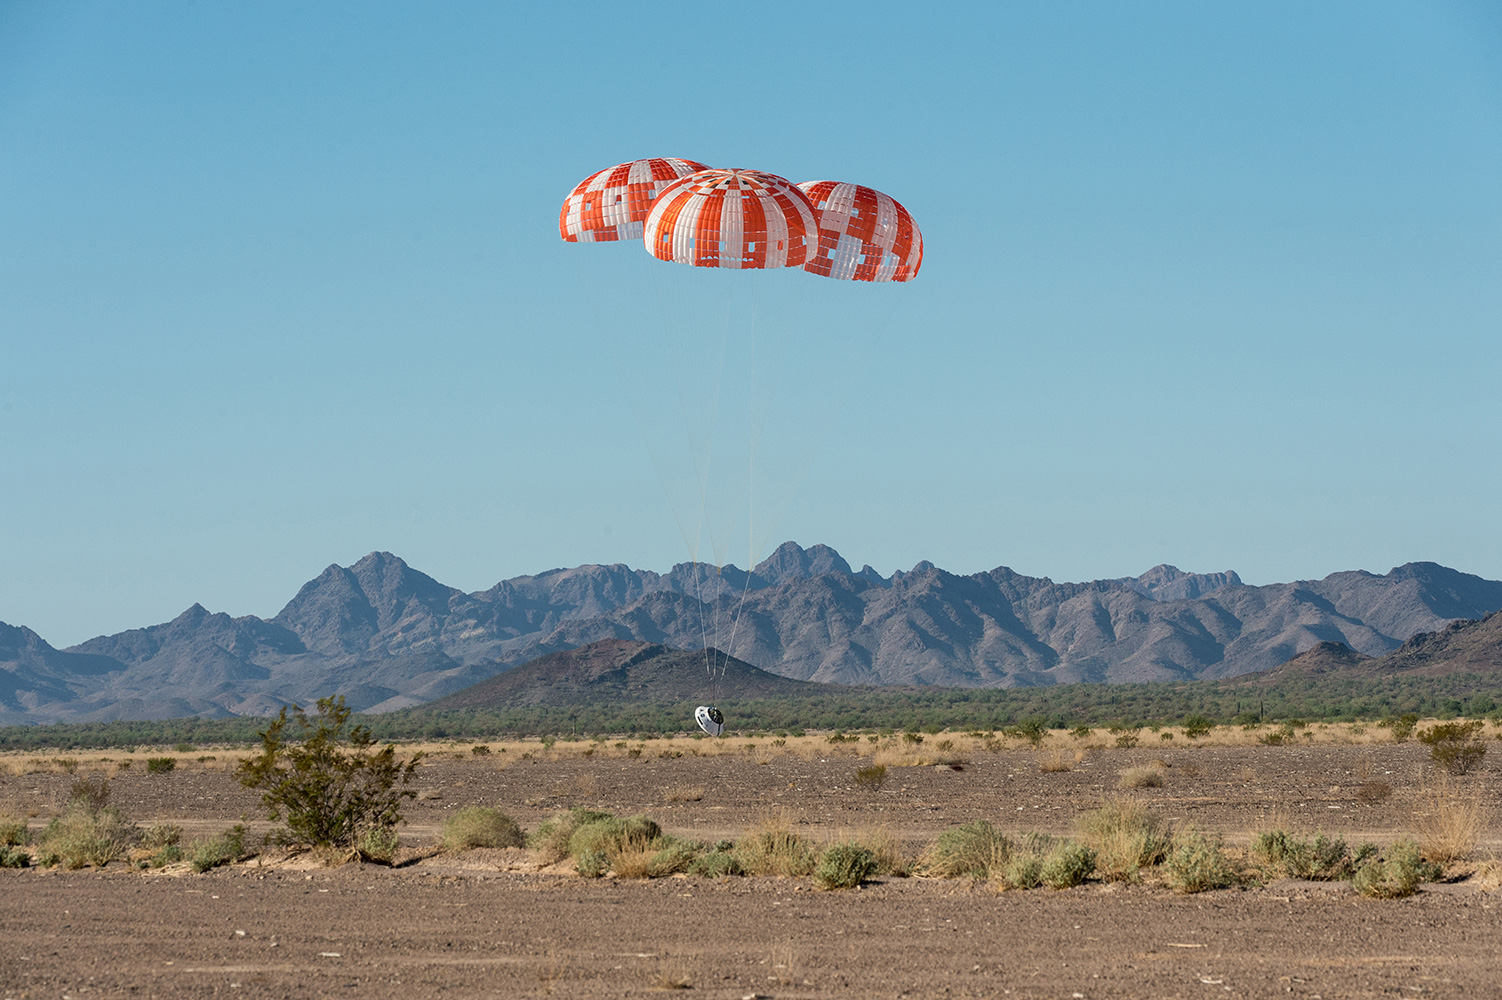 The Orion spacecraft had its parachutes completed a series of eight tests on Wednesday, Sept. 12, 2018. Photo Credit: NASA